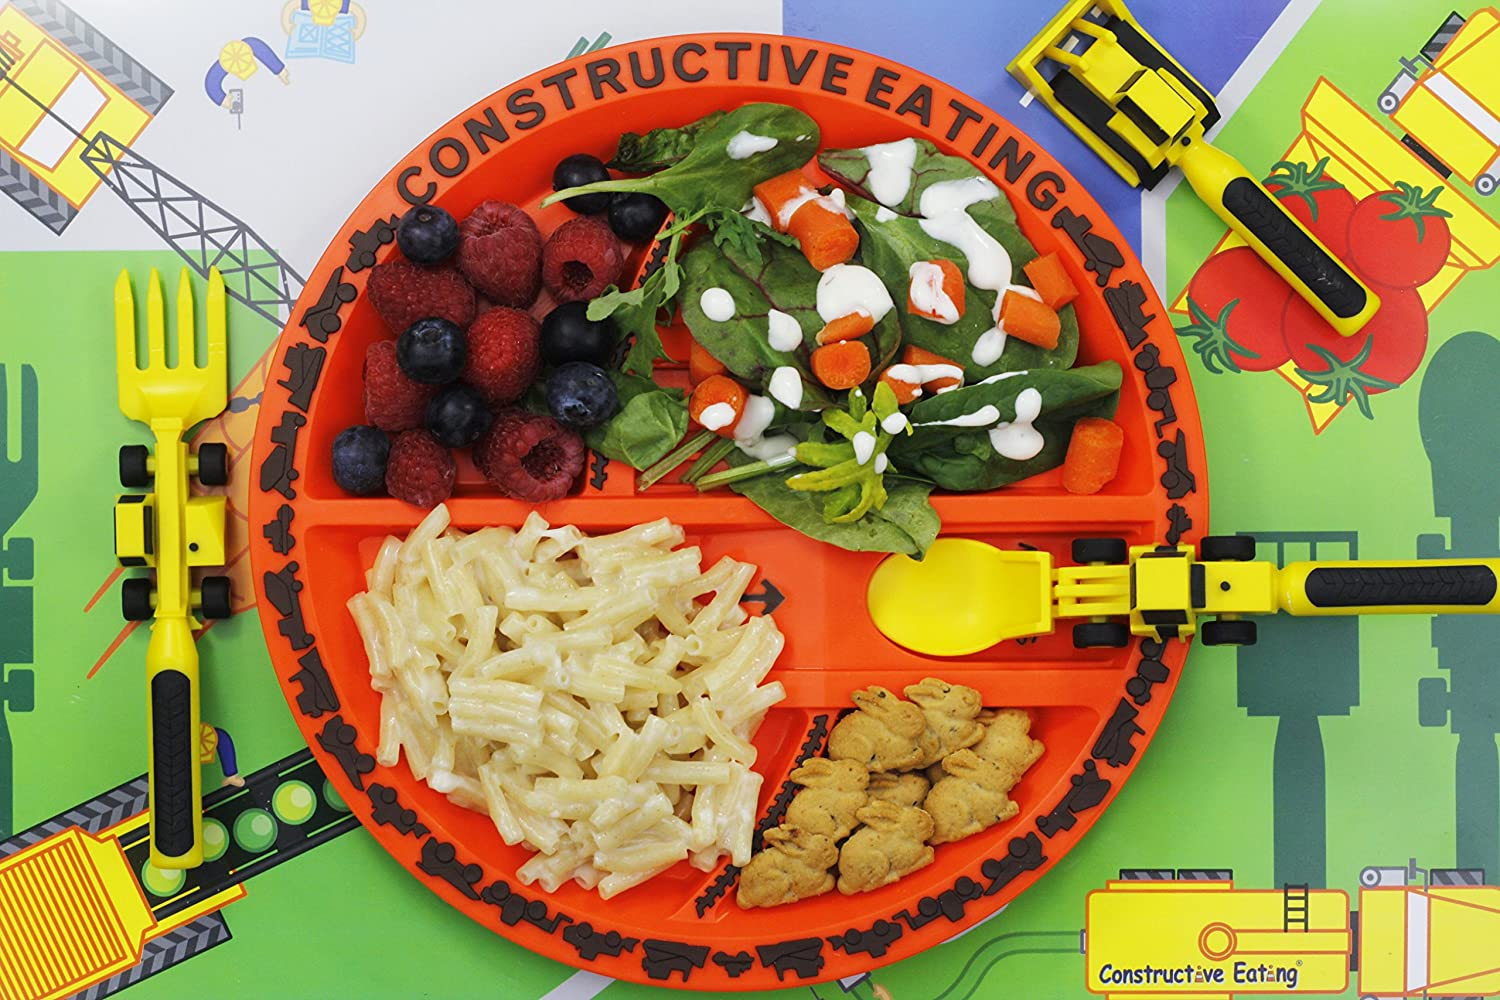 Infants and Placemat for Toddlers Flatware Set is Made with FDA Approved Materials for Safe and Fun Eating Babies and Kids Constructive Eating Construction Combo with Utensil Set Plate